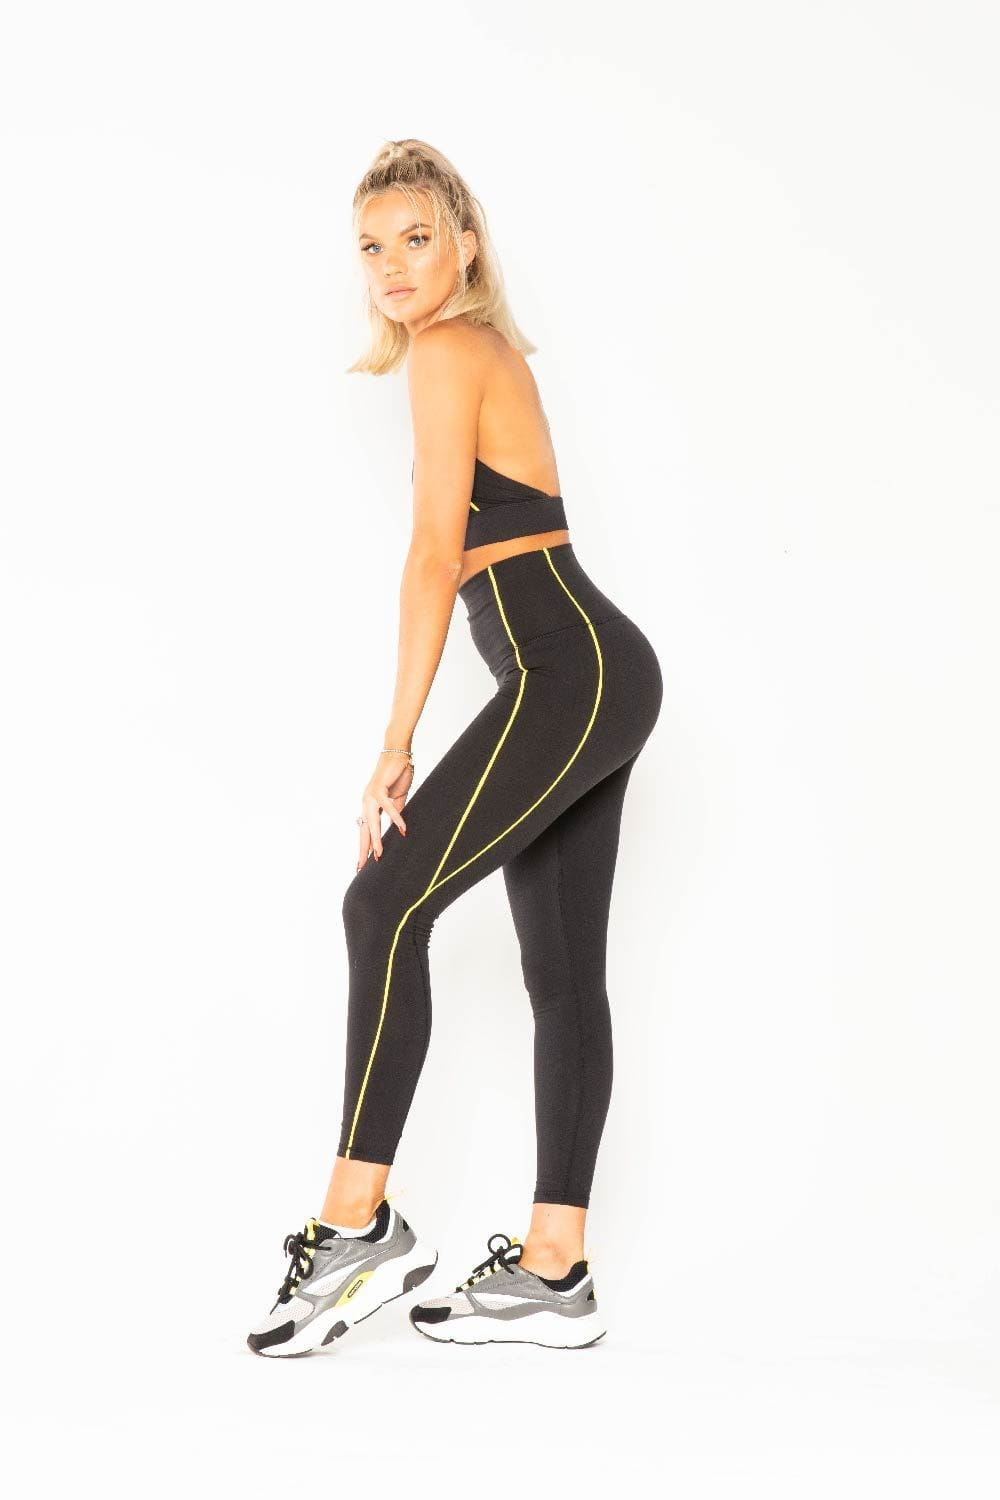 The Contrast Leggings